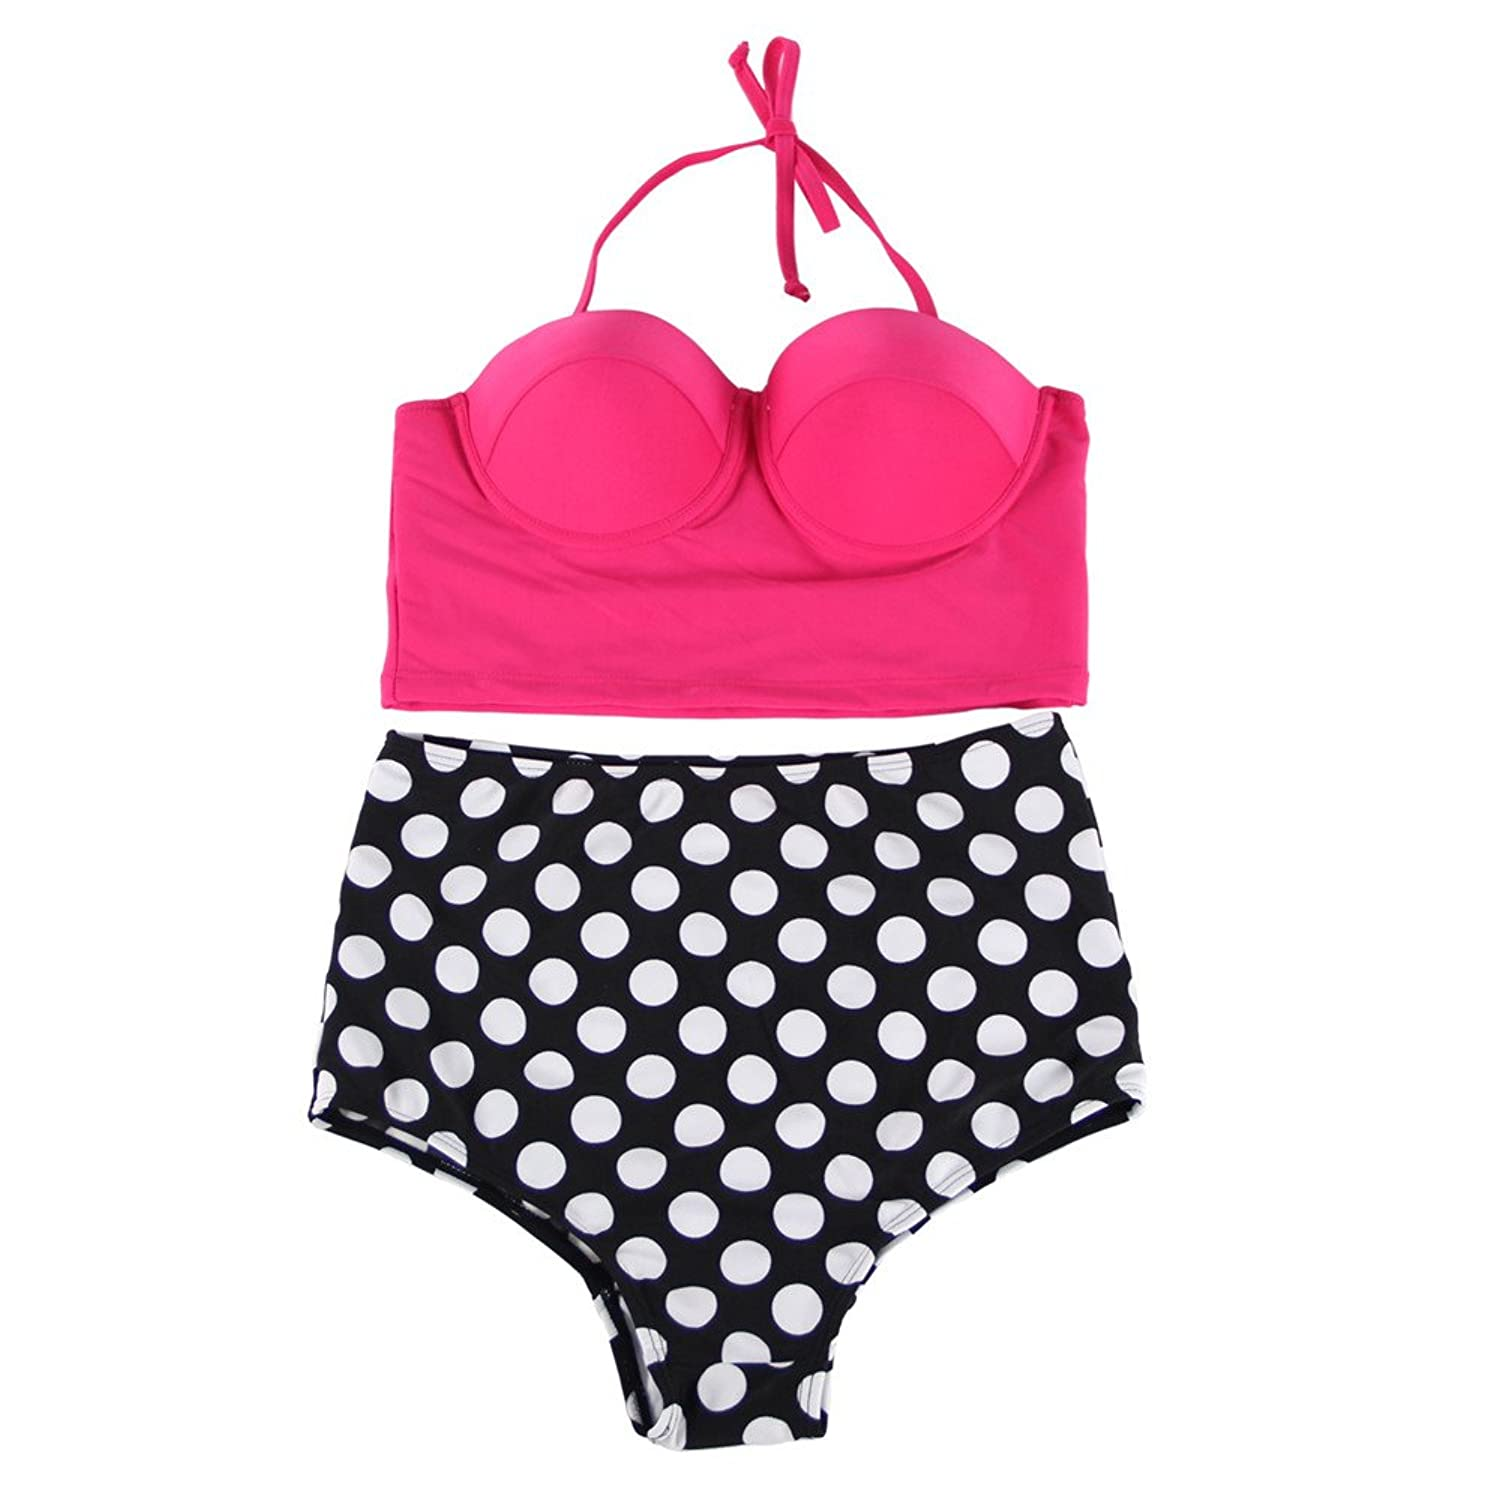 Your Gallery Retro Sexy High Waist Pin up Bikini Sets Polka Dot Swimwear Swimsuit your gallery retro sexy high waist pin up bikini sets polka dot swimwear swimsuit